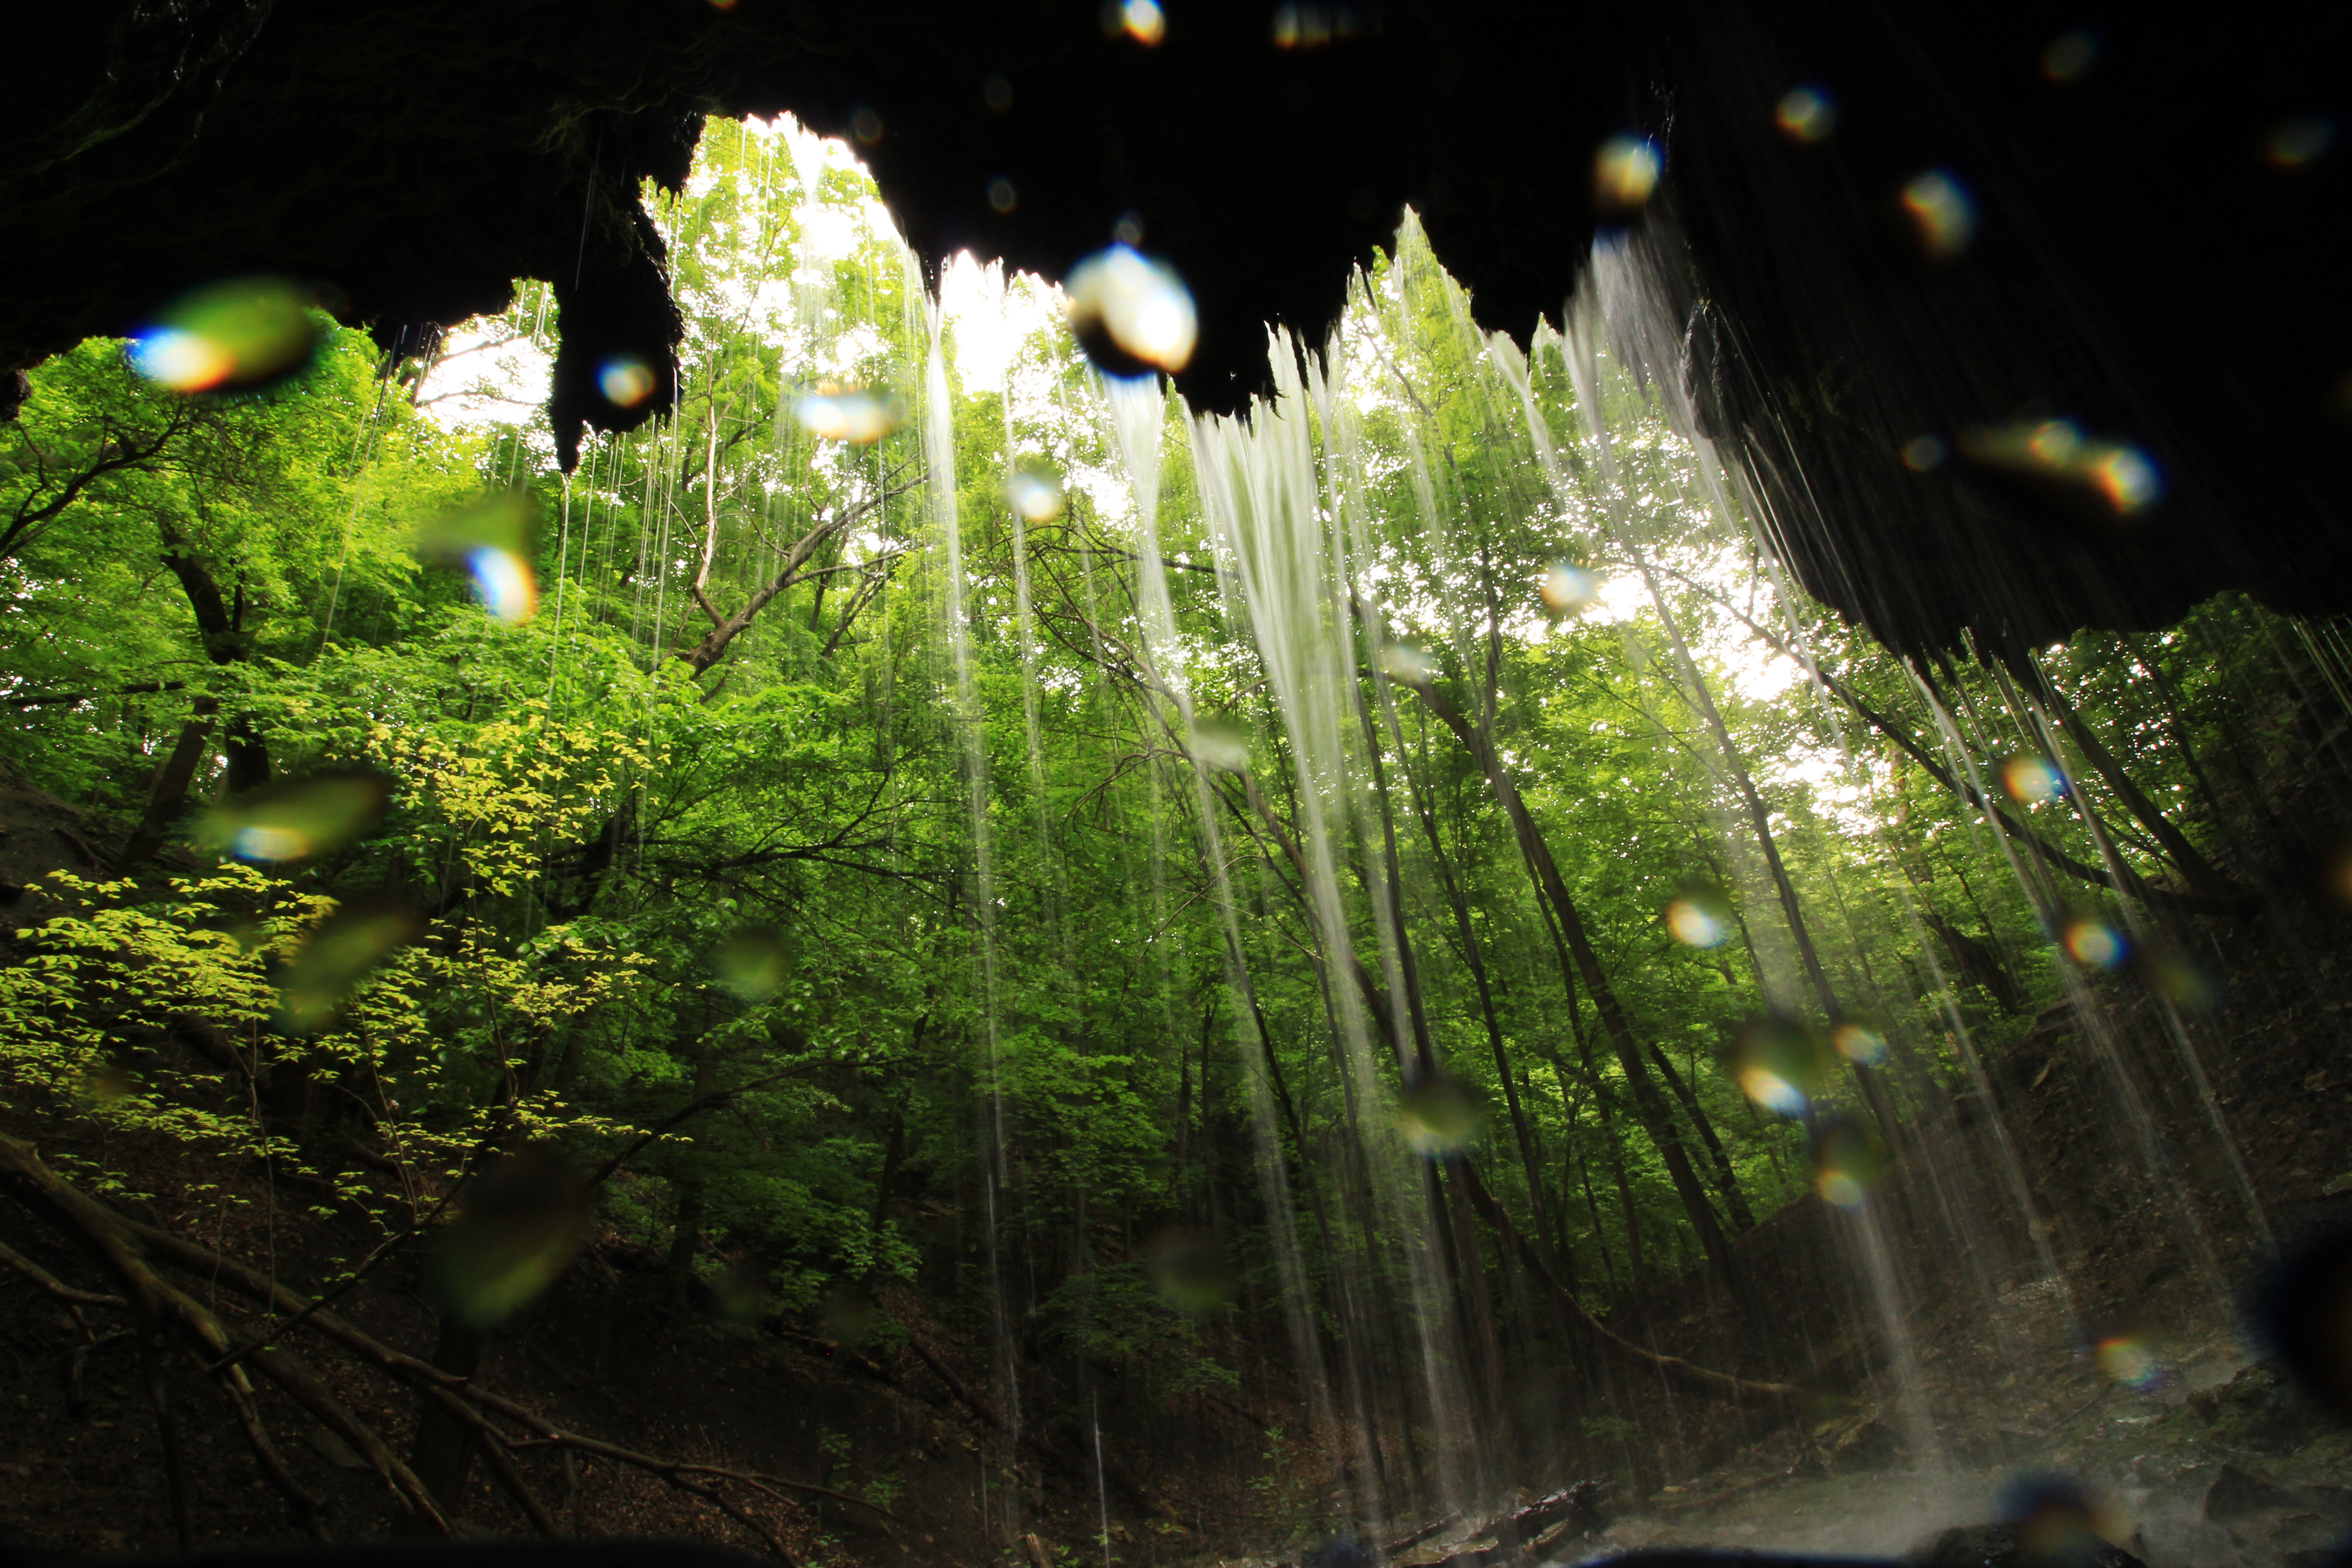 Shadow Falls Park. This photo is taken under a waterfall, and water droplets are visible on the lens. Photographer Erin D. Carter.